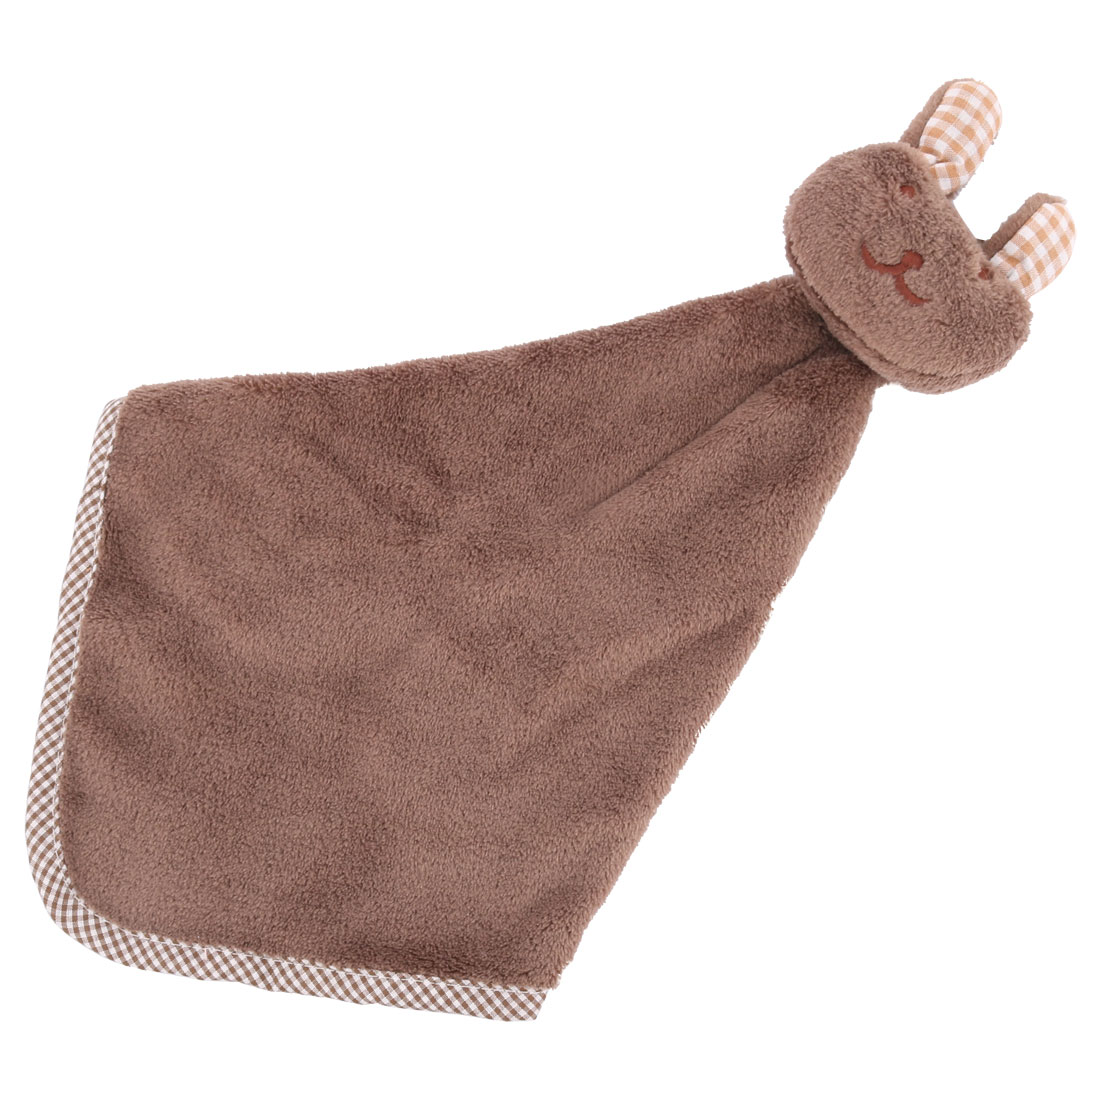 Kitchenware Rabbit Design Terry Wall Hanging Cleaning Hand Drying Towel Washcloth Coffee Color